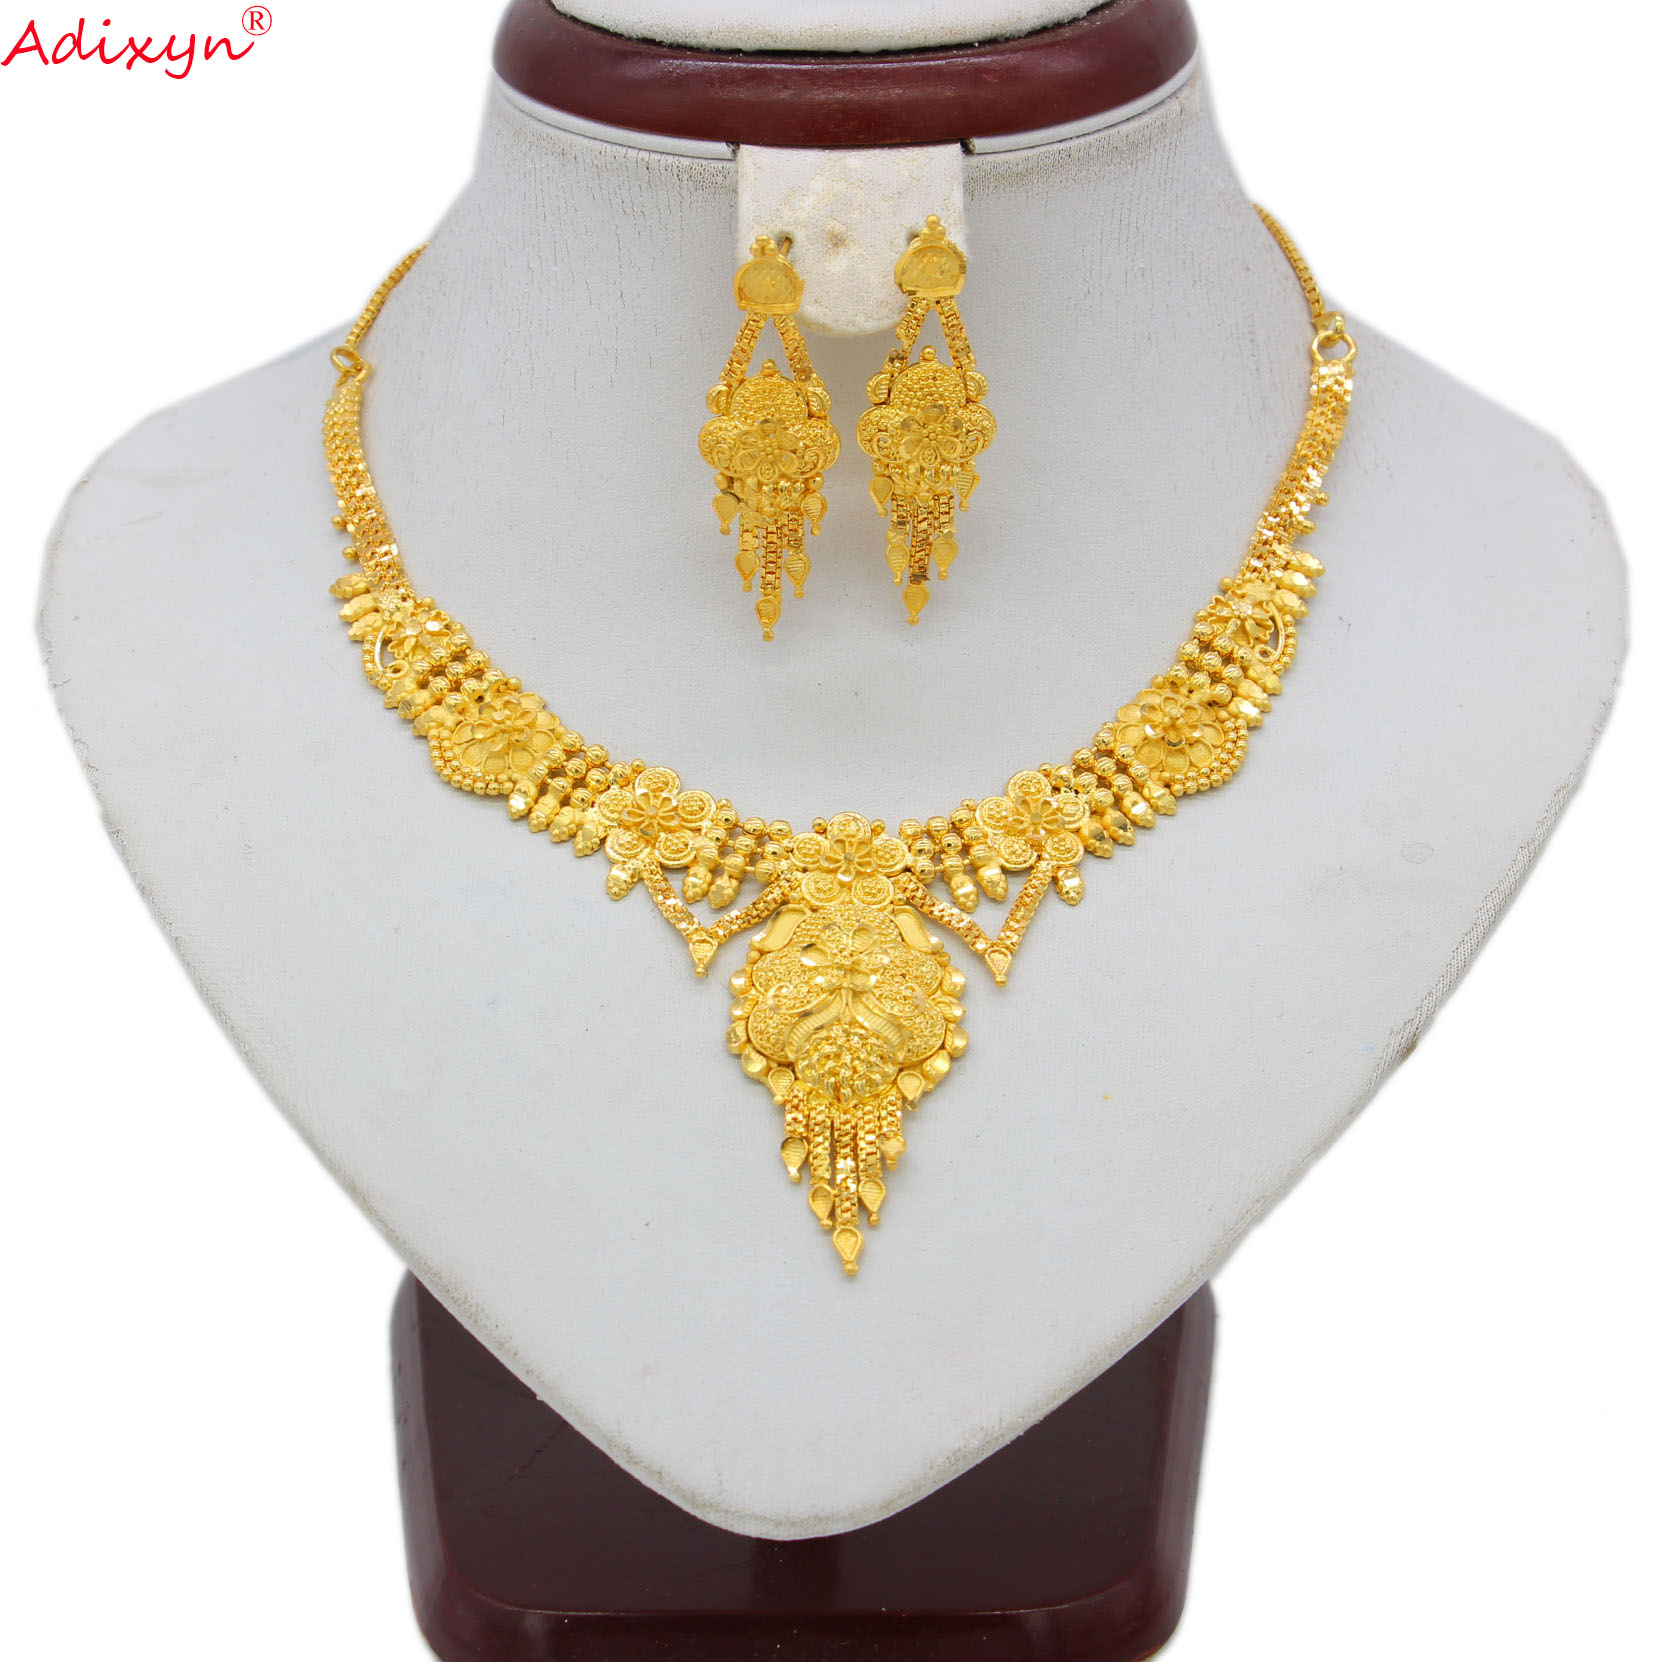 Adixyn India Jewelry Set Chokers Necklace Gold Color/Copper Tassel Earrings for Woman Dubai/Ethiopian Party Gifts N06084(China)